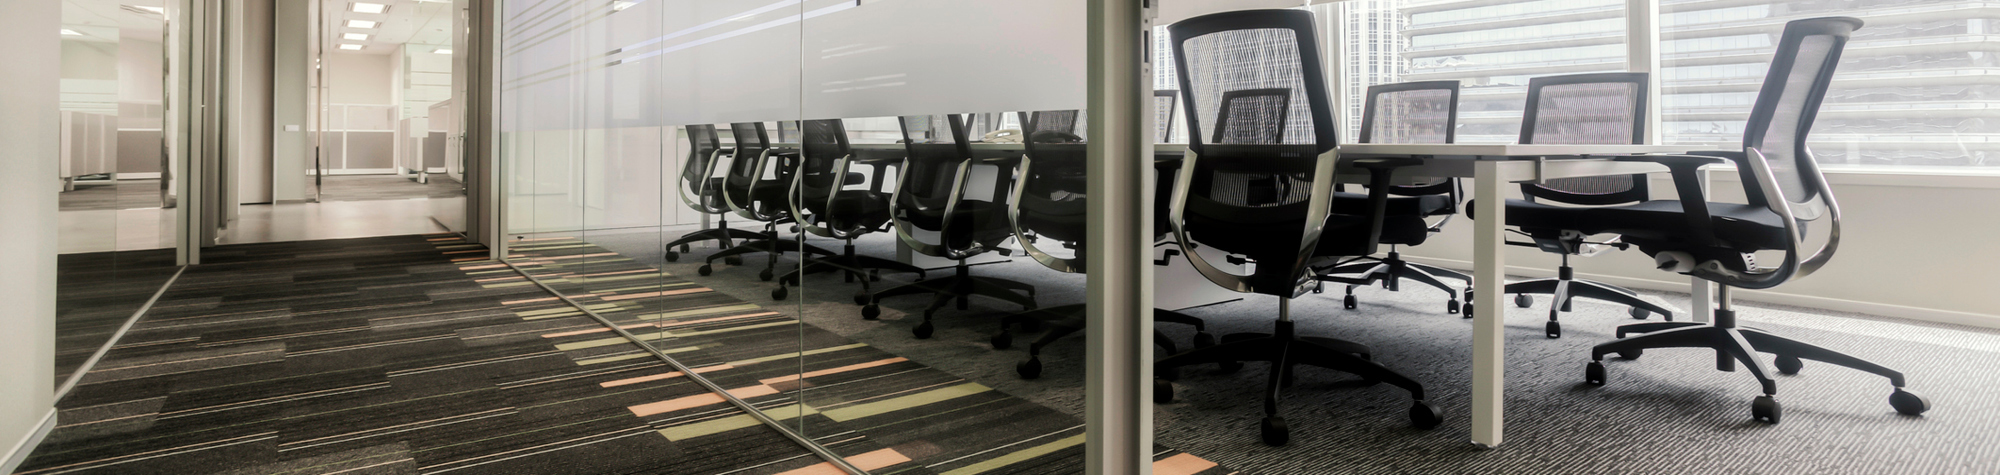 Executive Board Kate McClorey Cover Image. Featuring a glass-walled boardroom with a 14-seater table surrounded by wheeled, grey and black office chairs. Also featuring a square patterned carpet and doorway to another office room. Search Consultancy.